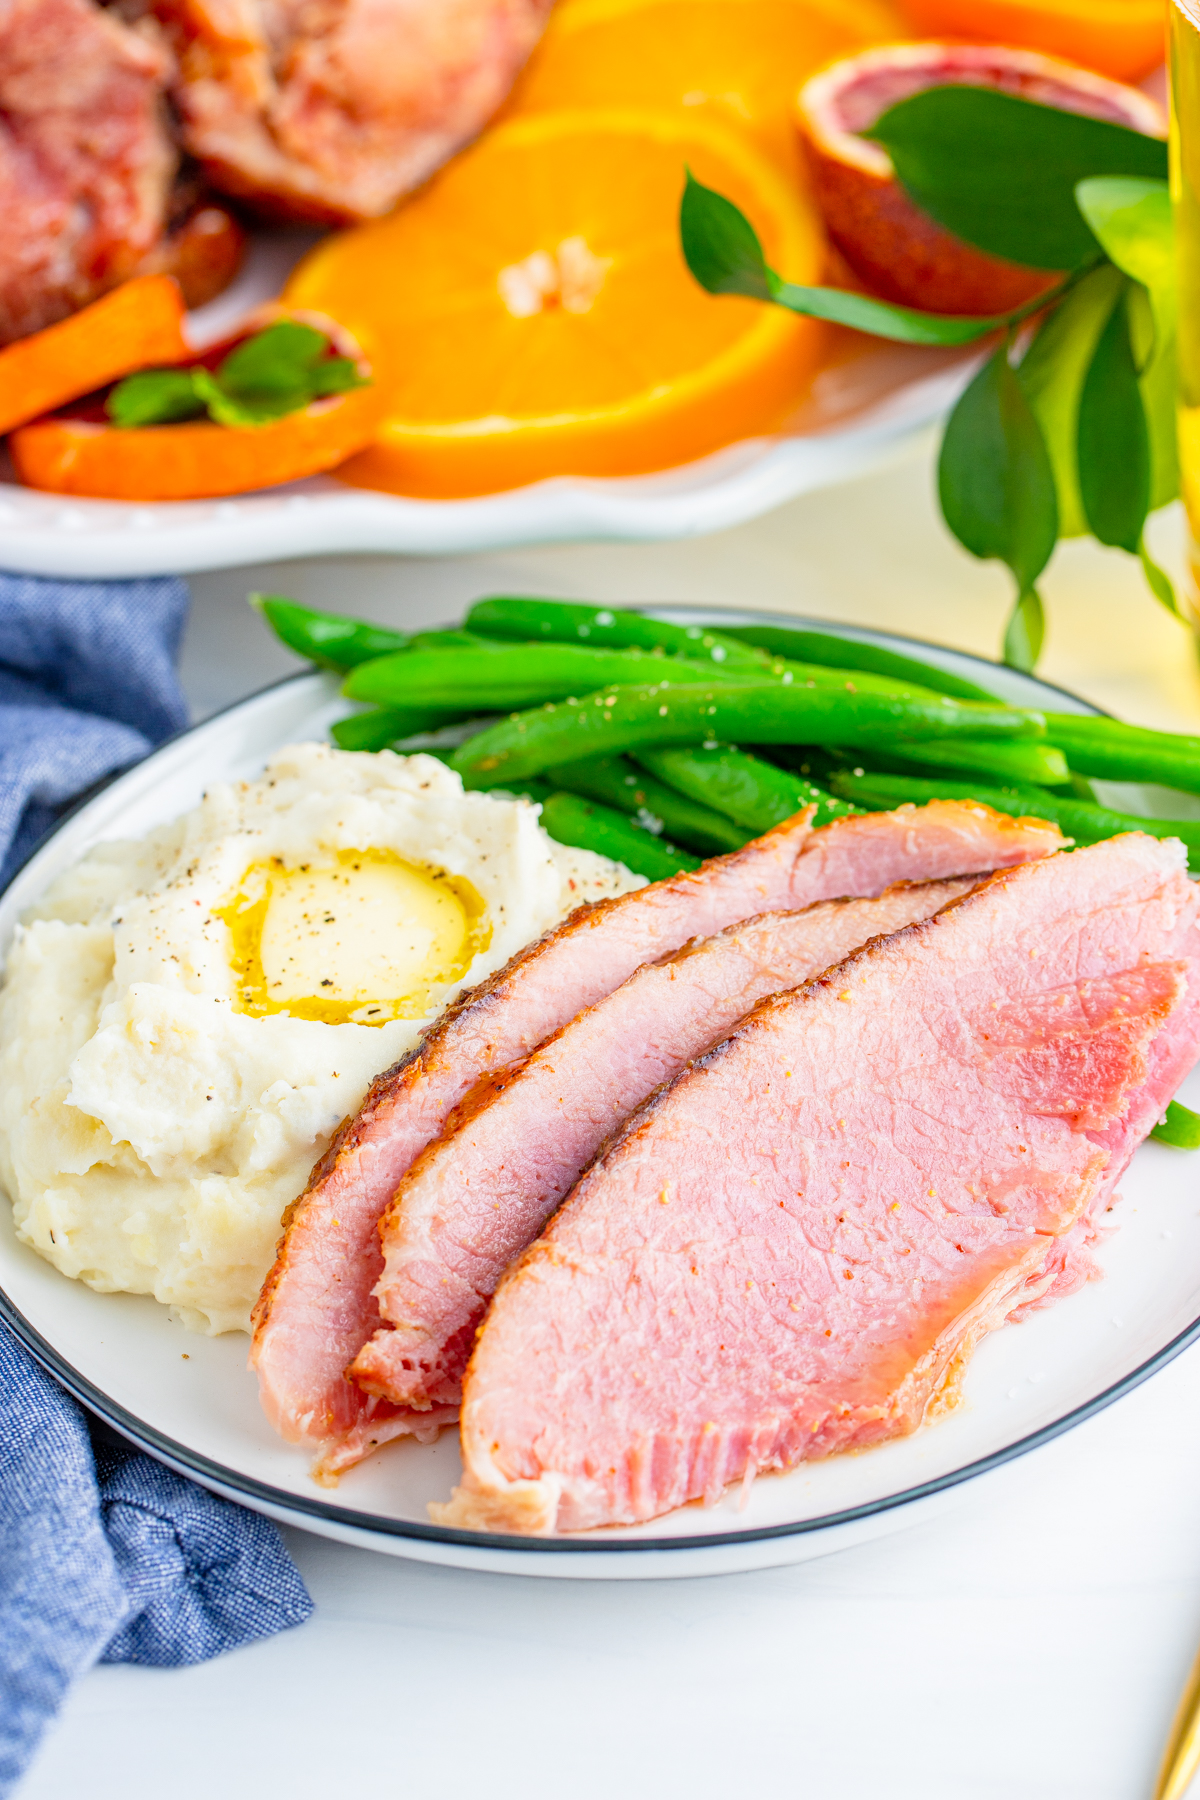 Sliced Honey Baked Ham on plate with mashed potatoes and green beans